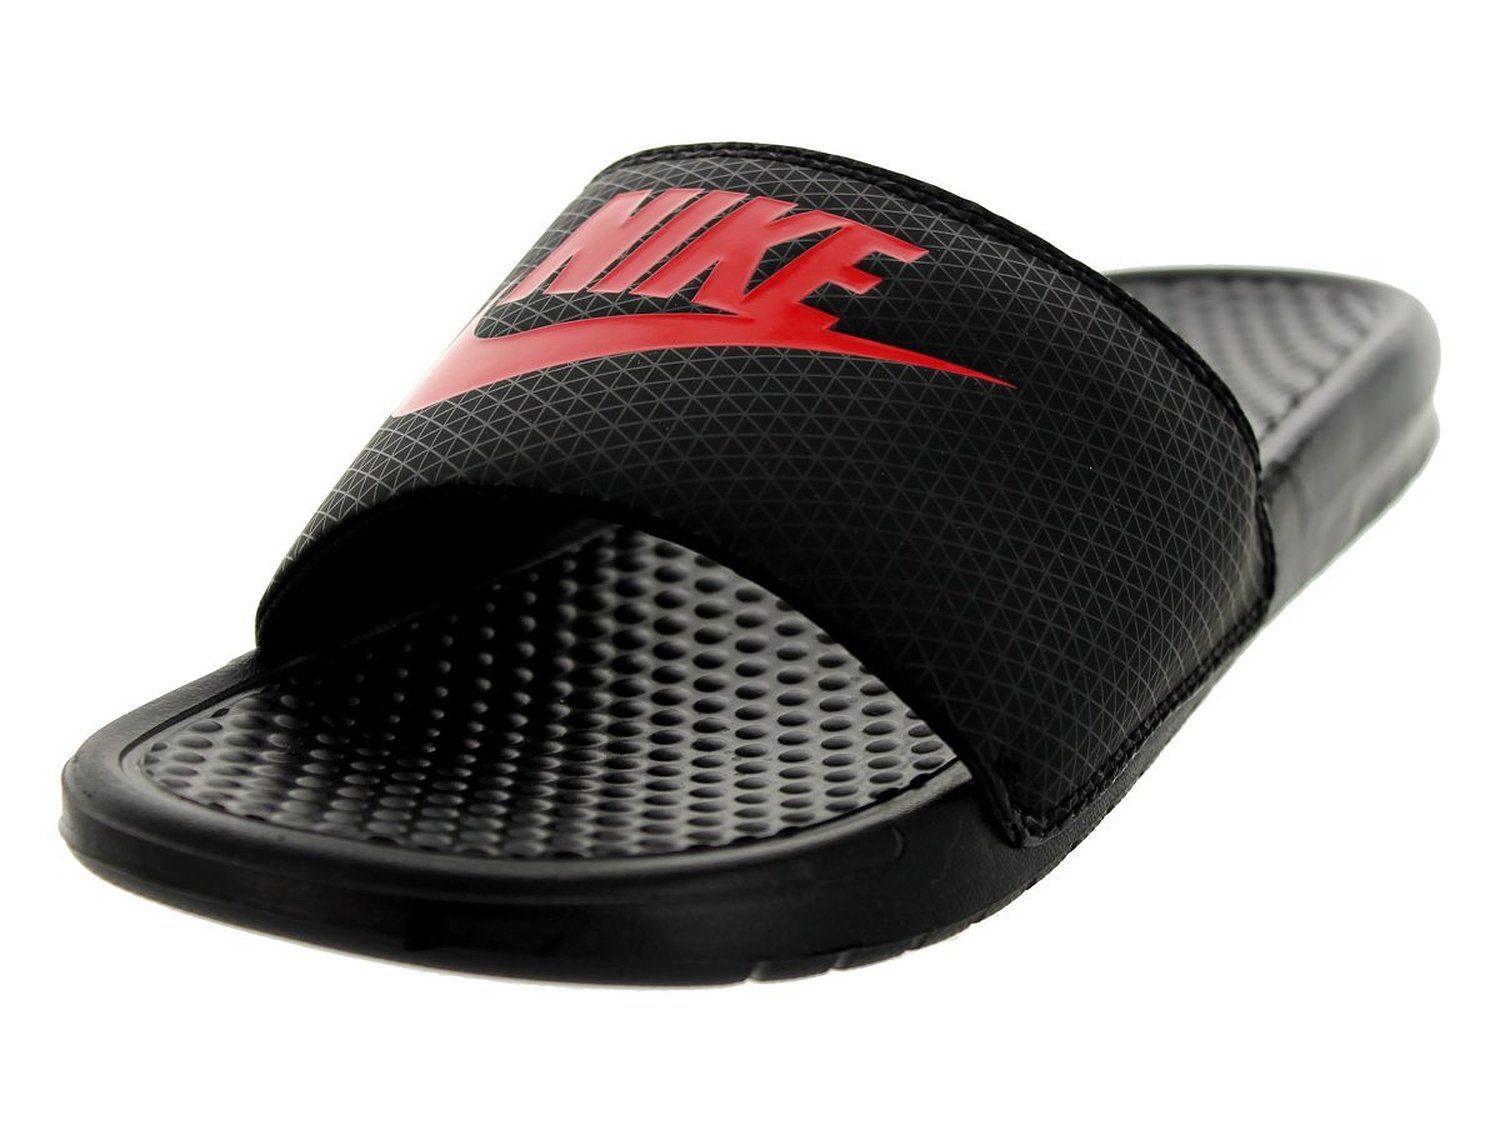 b160909a6bcd Amazon.com  Nike Men s Benassi JDI Black Challenge Red Sandal 8 Men US   Beach Shoes  Shoes